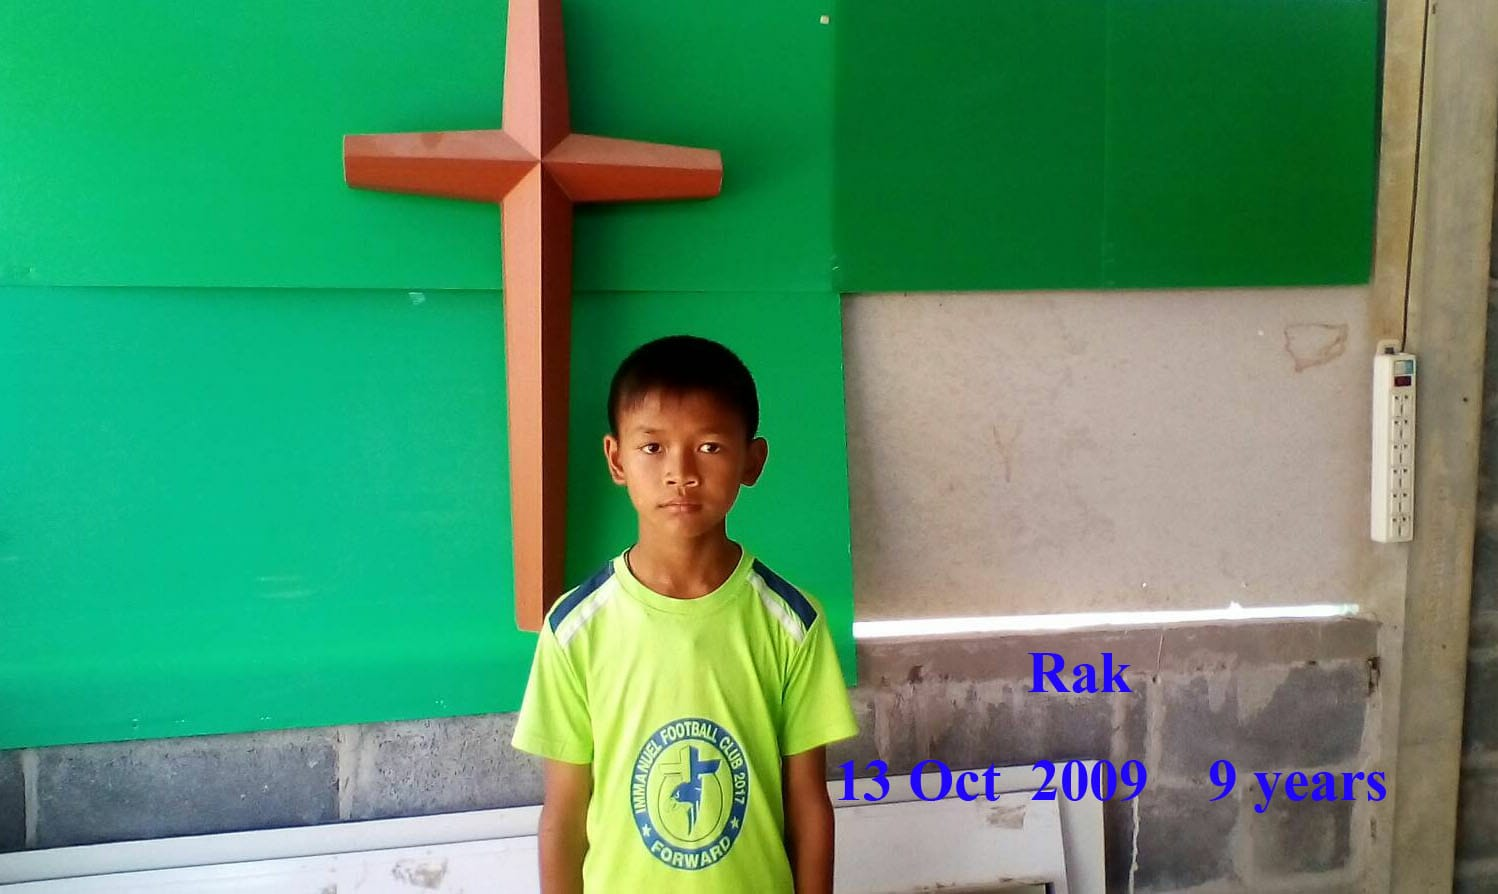 Rak (9 years old, boy)